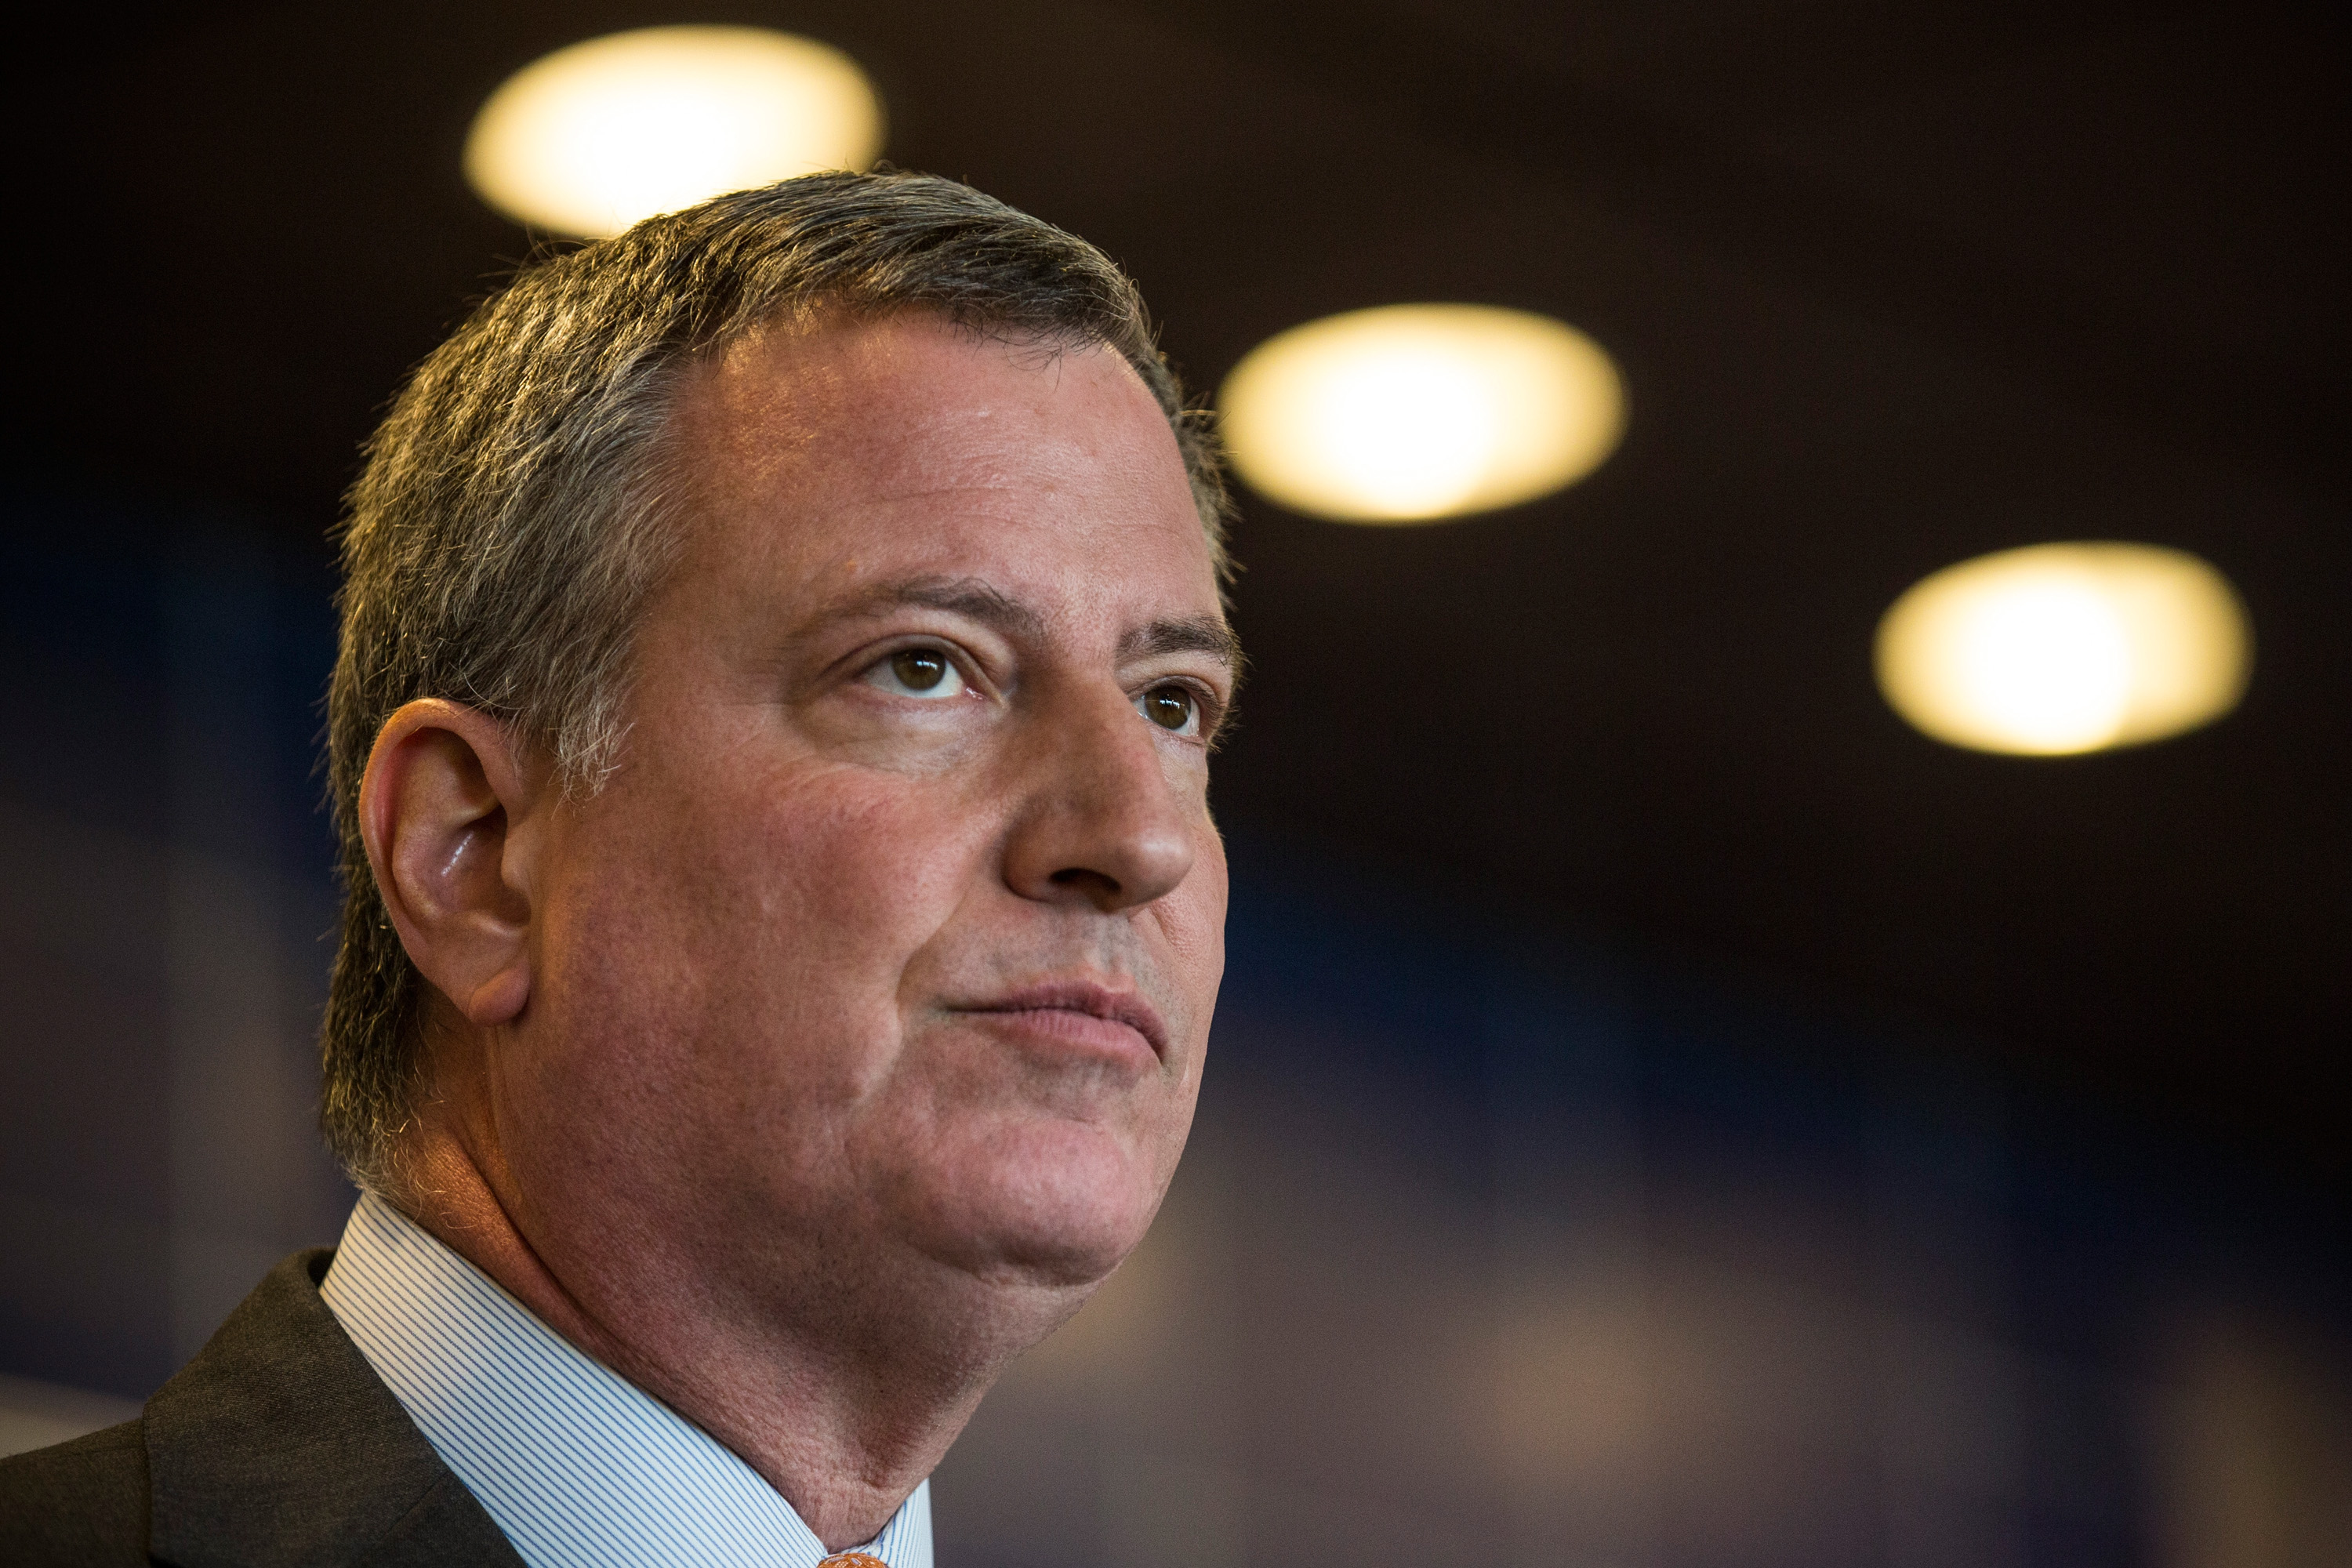 Bed-Stuy residents are asking Mayor Bill de Blasio to reconsider his opposition to a City Council plan to hire 1,000 new cops. (Andrew Burton/Getty Images)